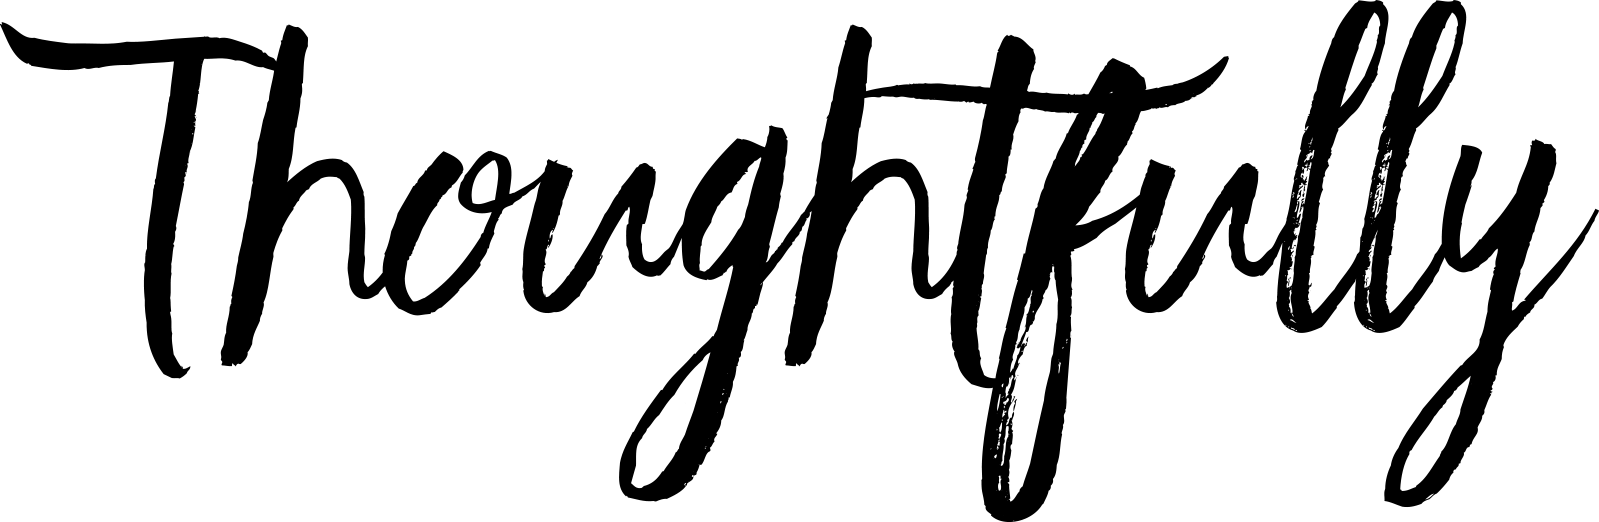 Thoughtfully_Logo_Blk_transparent.png